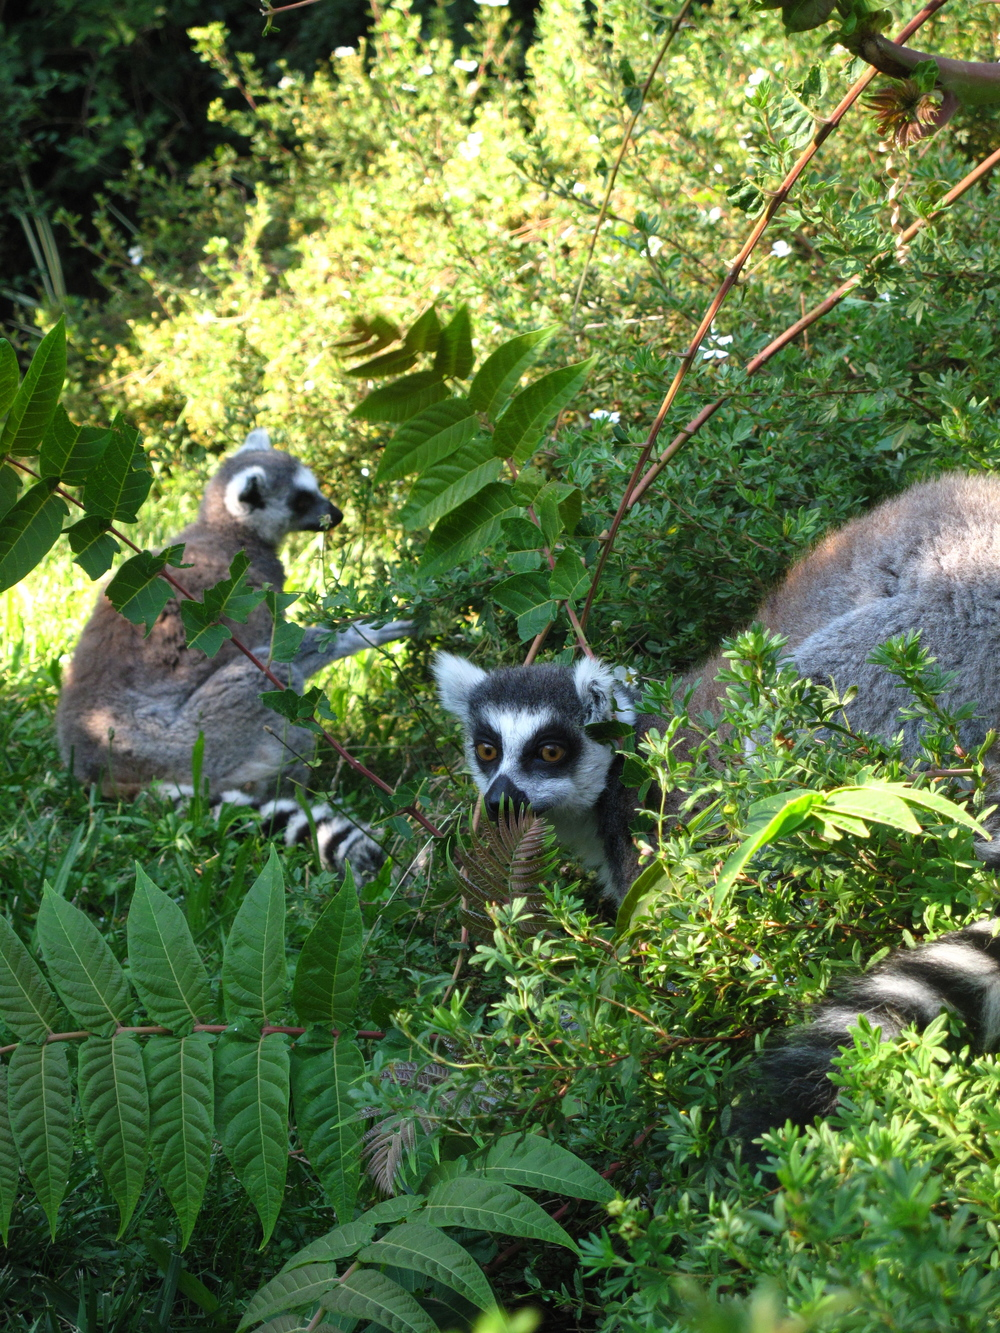 Two cute lemurs with black and white markings.